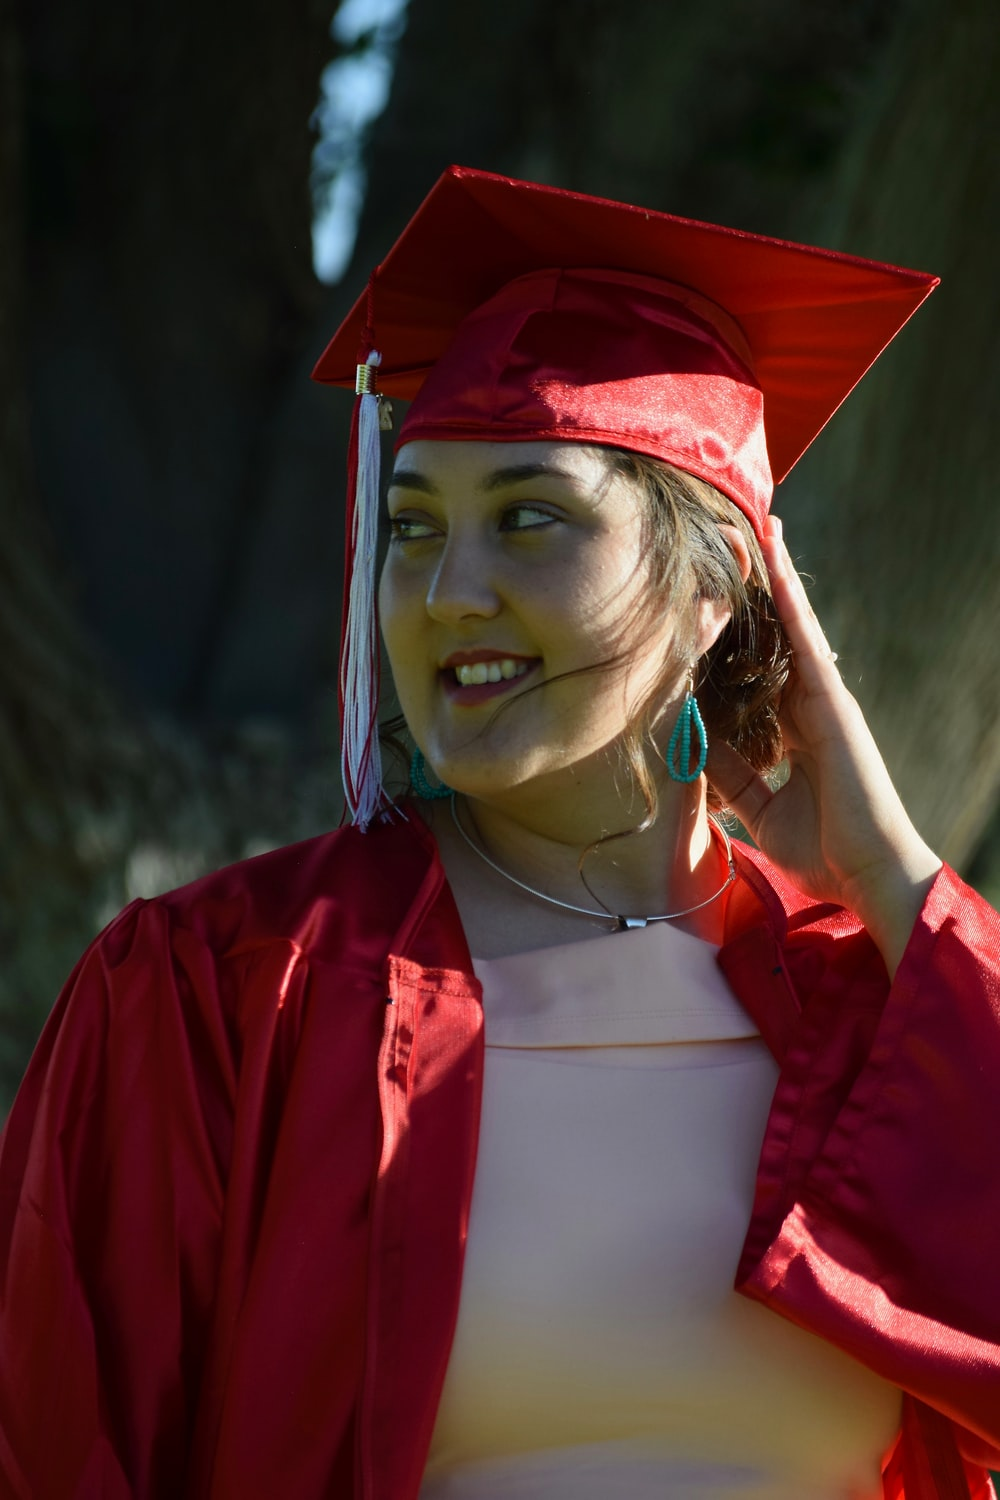 woman wearing red academic dress smiling